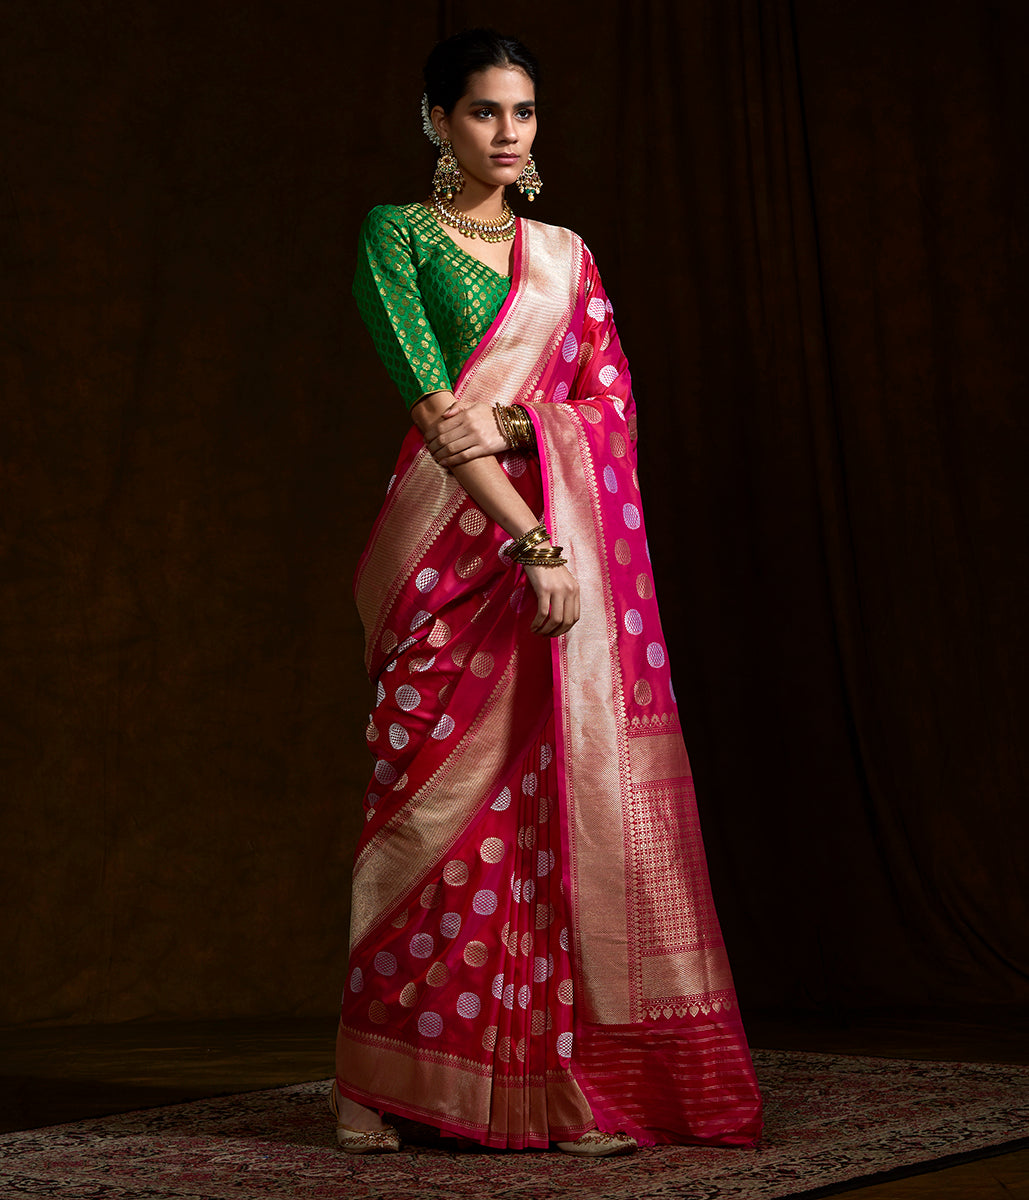 Pink and red dual tone saree with asharfi boota